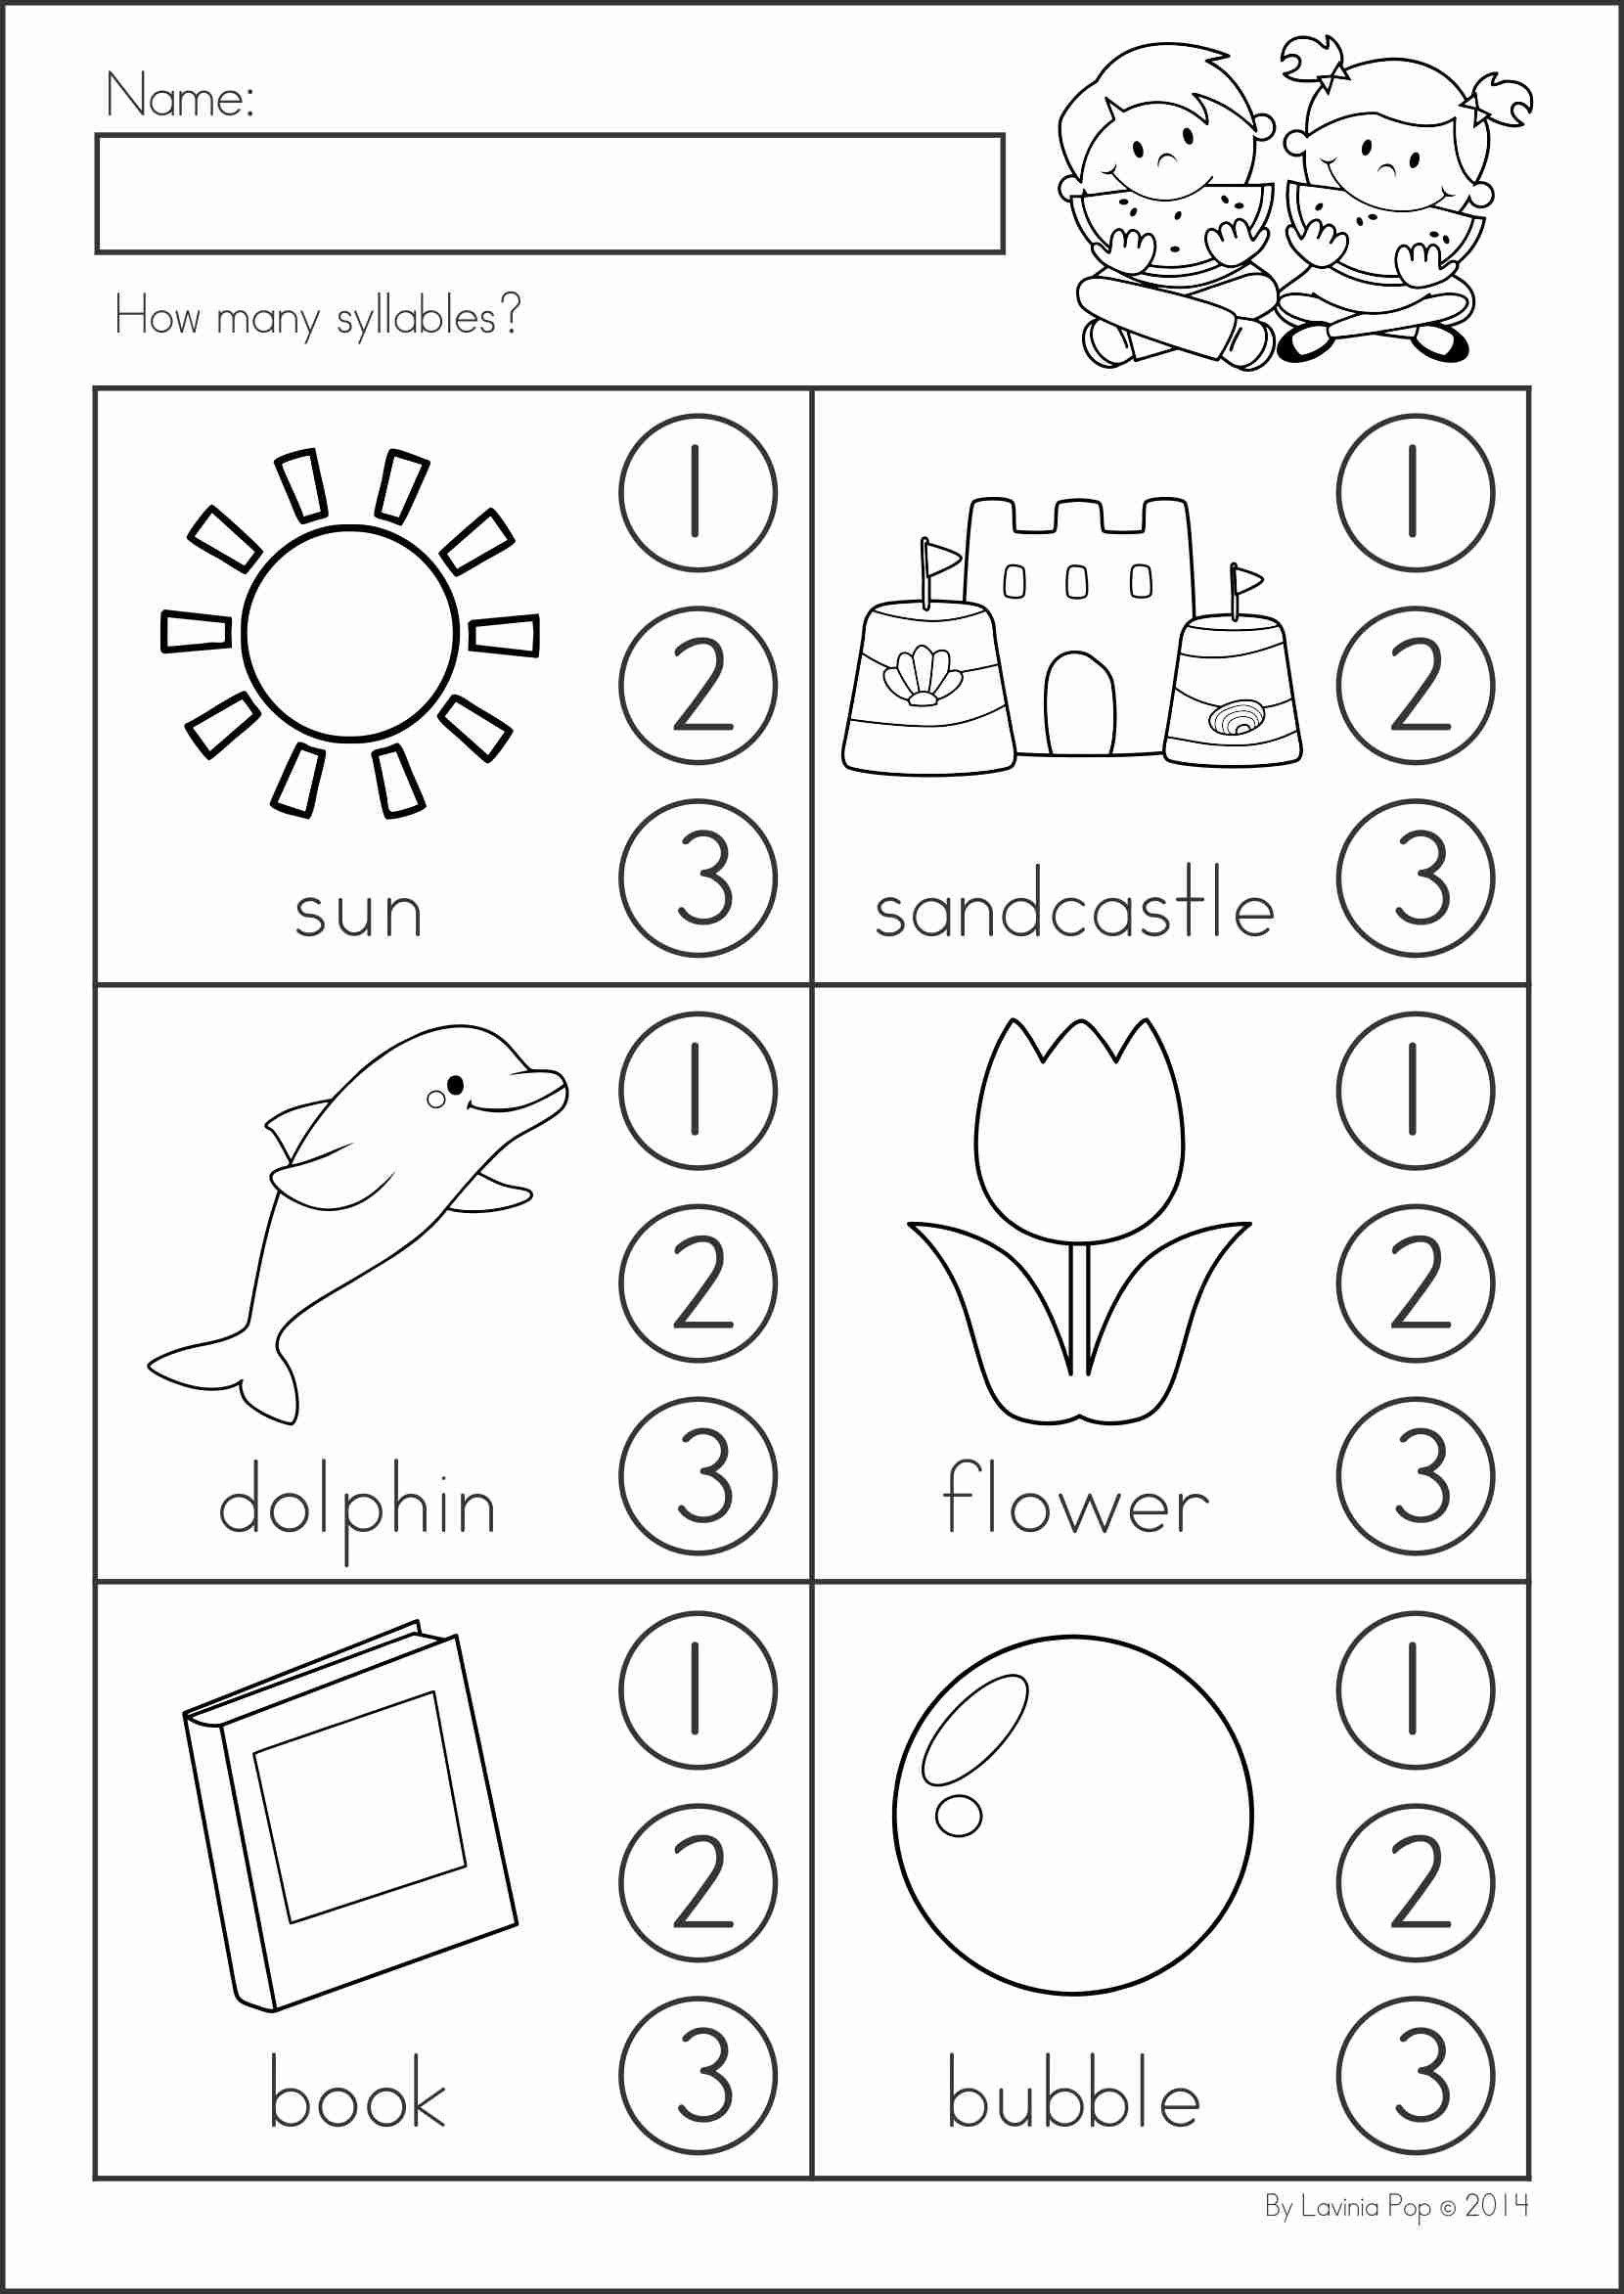 Syllable Worksheets For First Grade Free Syllables Worksheets In 2020 Syllable Worksheet Literacy Worksheets Kindergarten Worksheets Printable